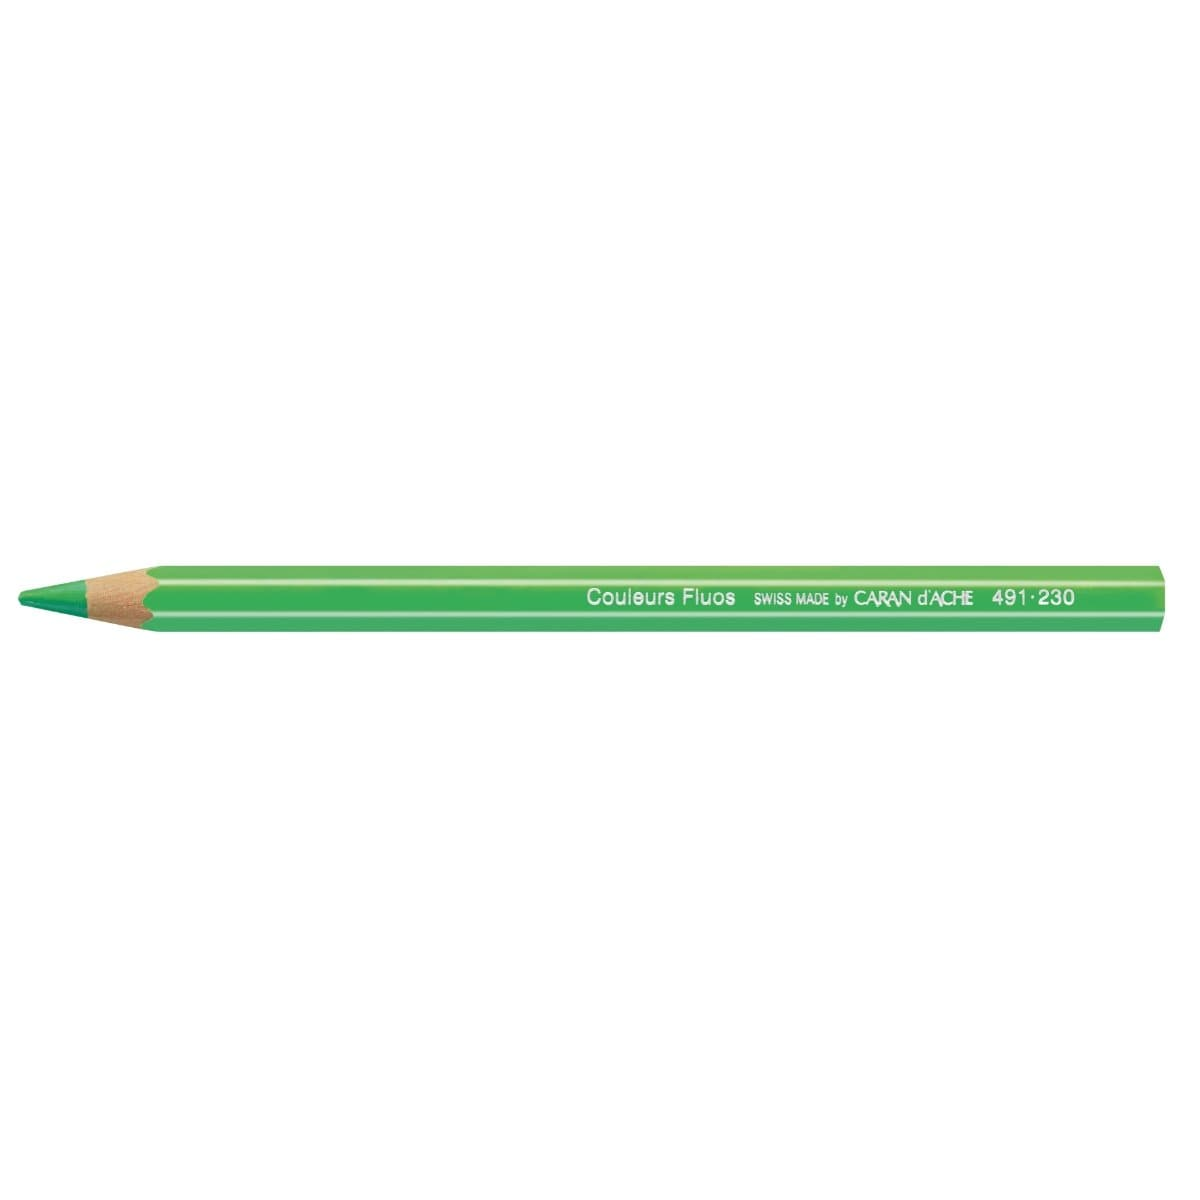 CARAN d'ACHE Fluorescent Color Pencil, Green